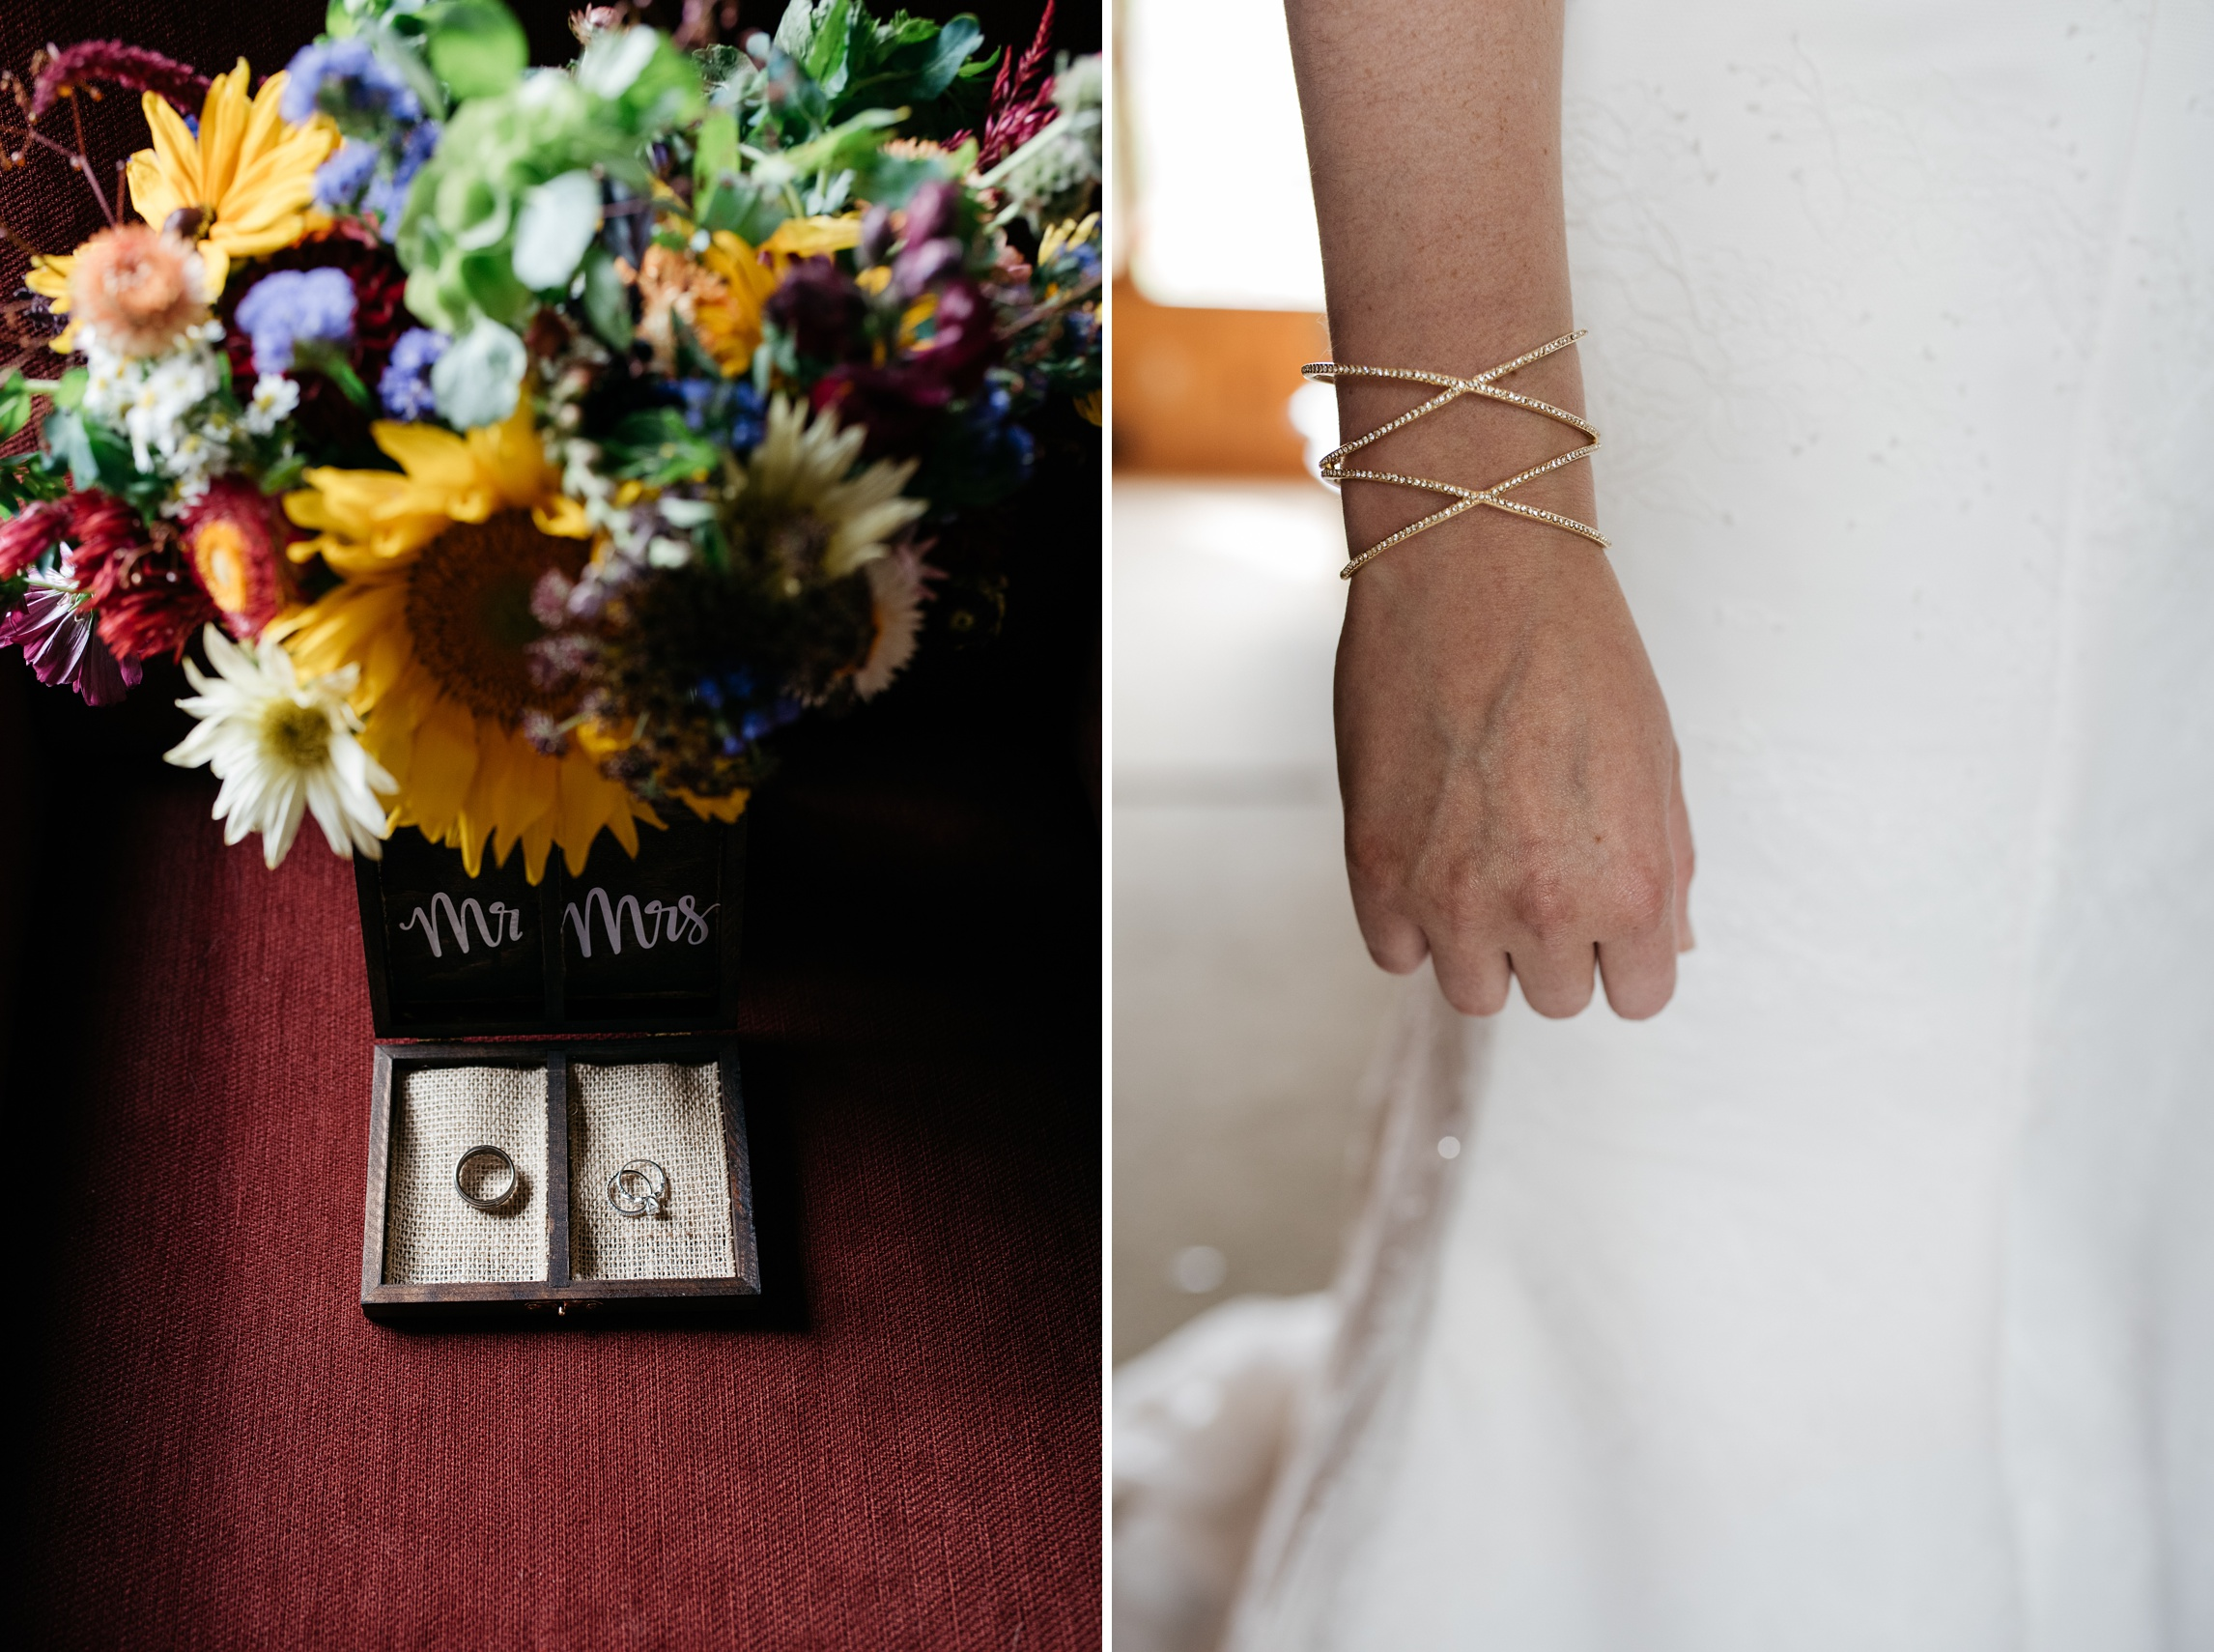 Detail shots from a wedding at Sylvan Dale Guest Ranch outside of Loveland, Colorado. Wedding photography by Sonja Salzburg of Sonja K Photography.